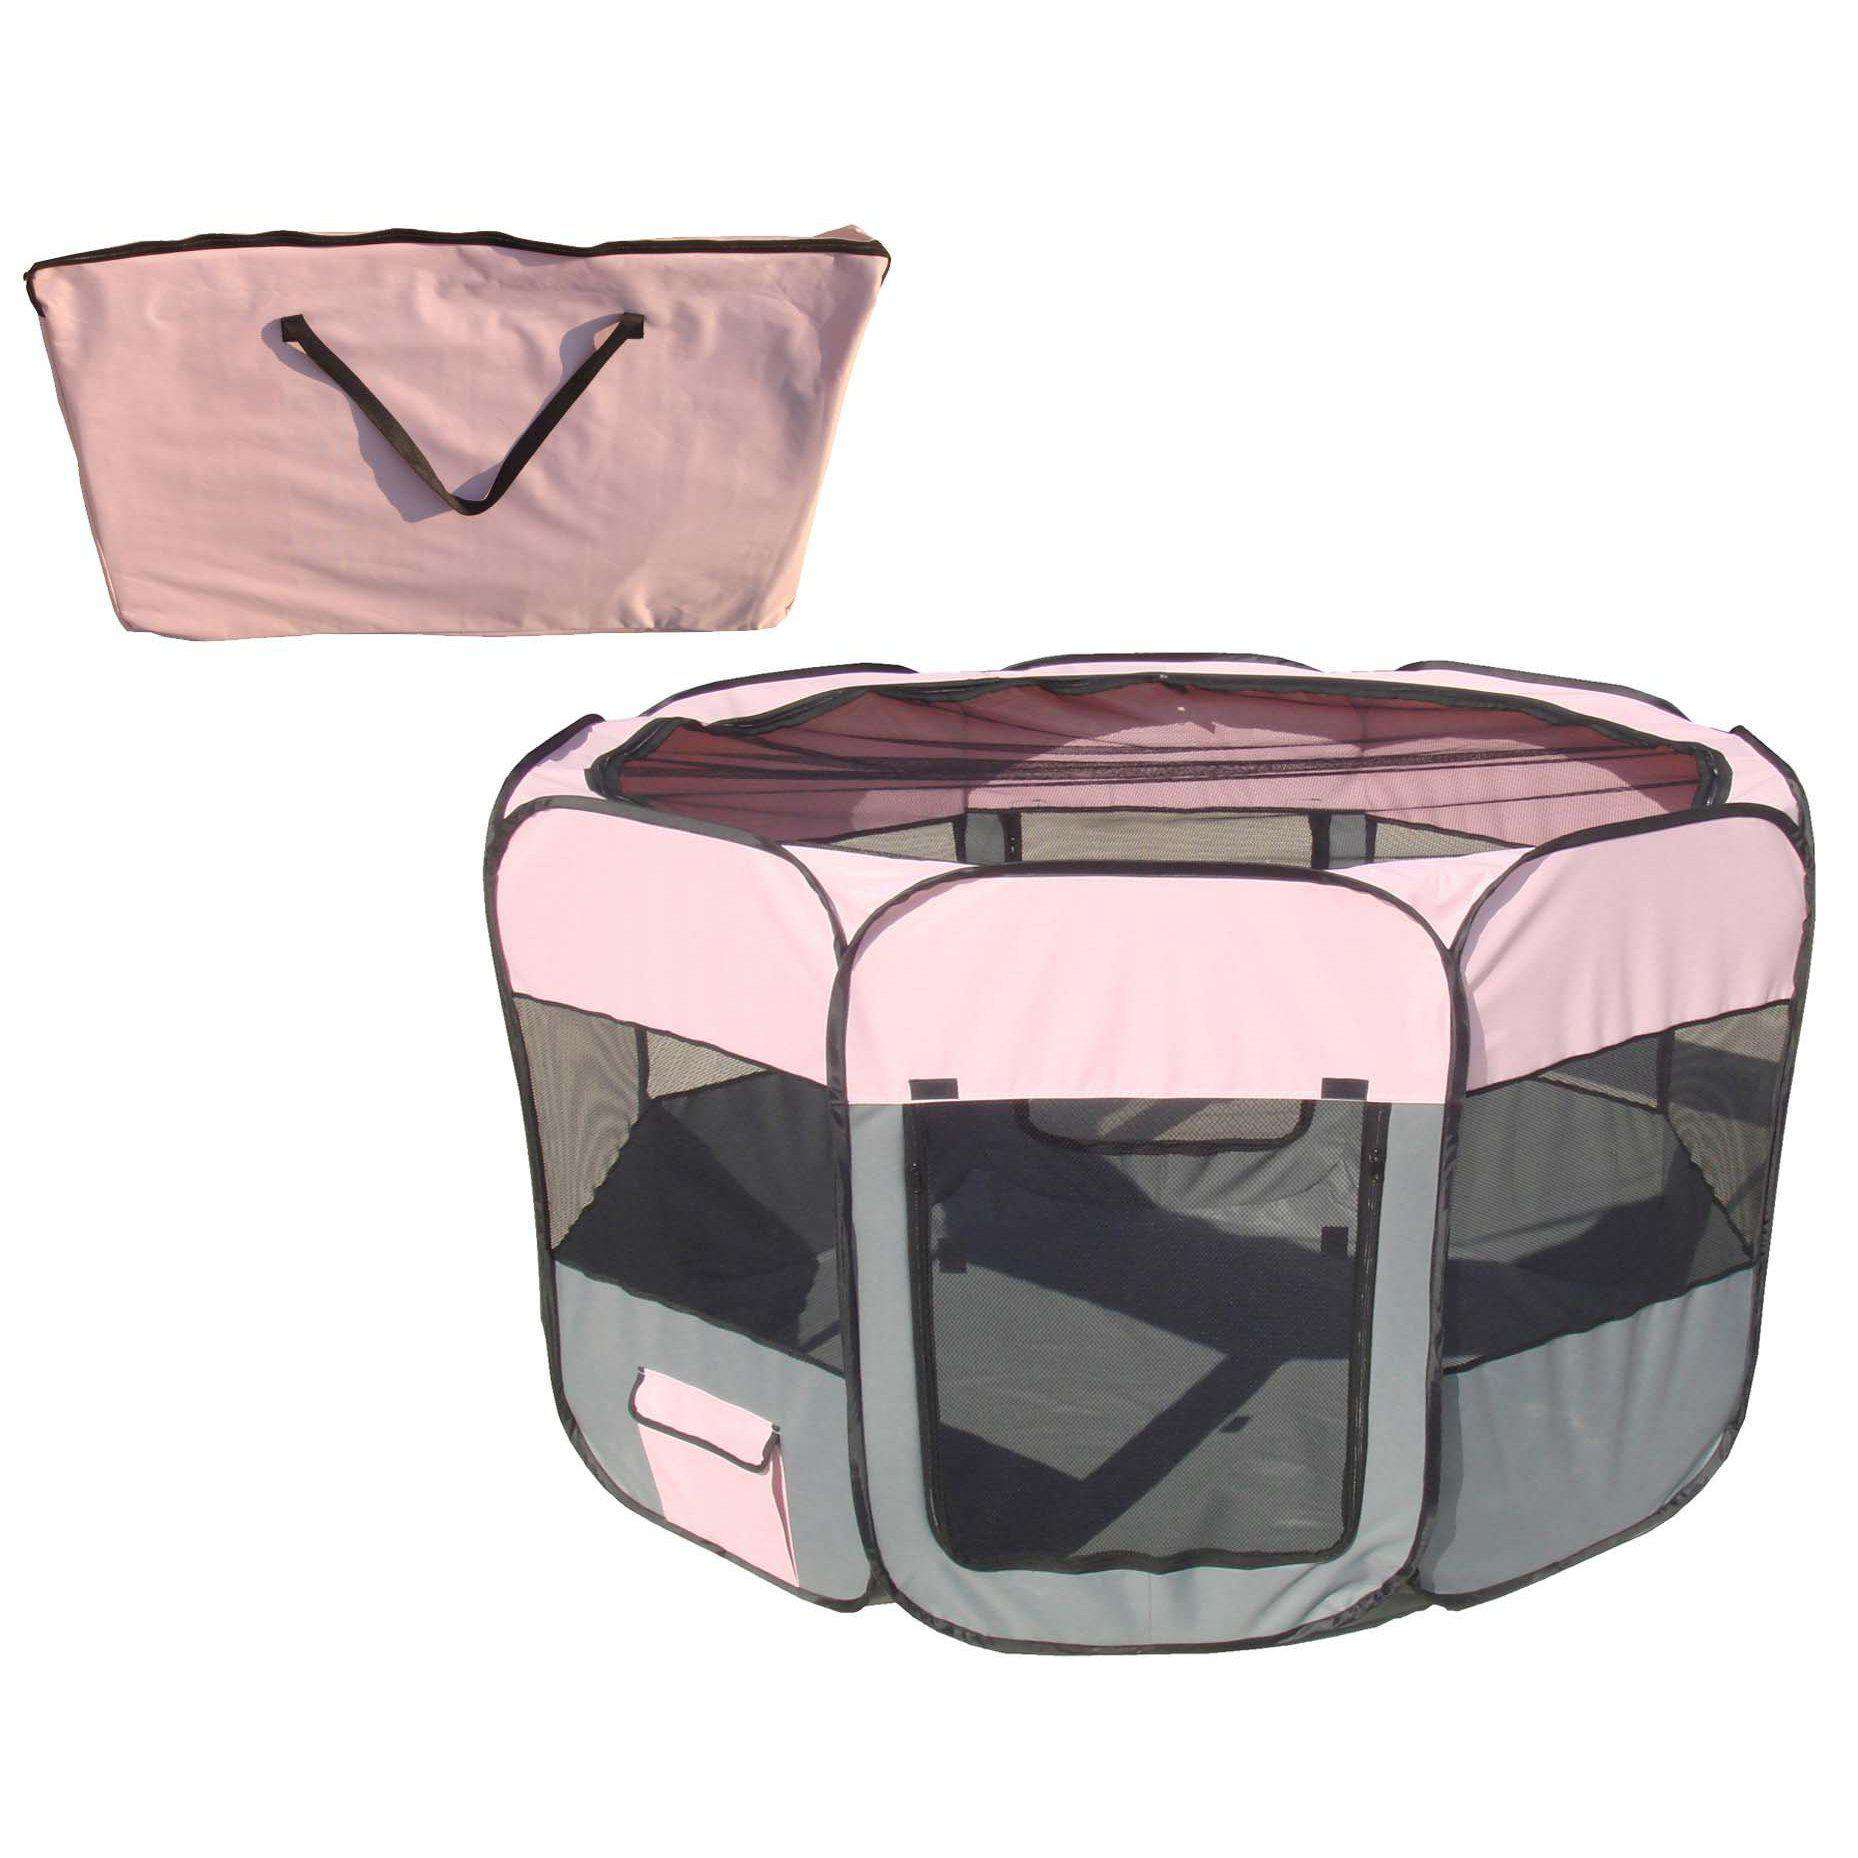 All-Terrain' Lightweight Easy Folding Wire-Framed Collapsible Travel Pet Playpen- Pink And Grey-Pet Life-DirtyFurClothing